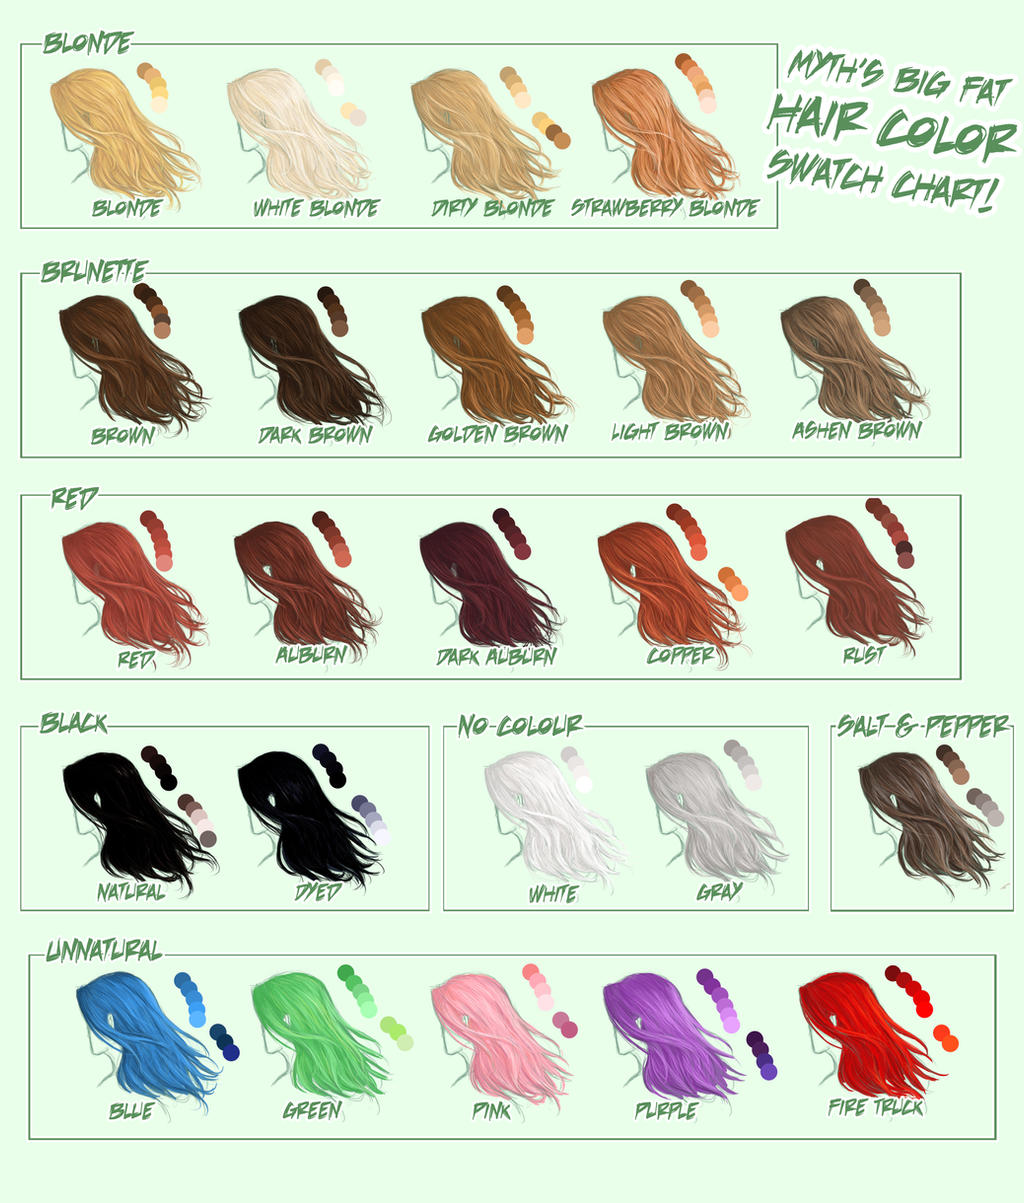 Myth's Big Fat Hair Color Swatch Chart